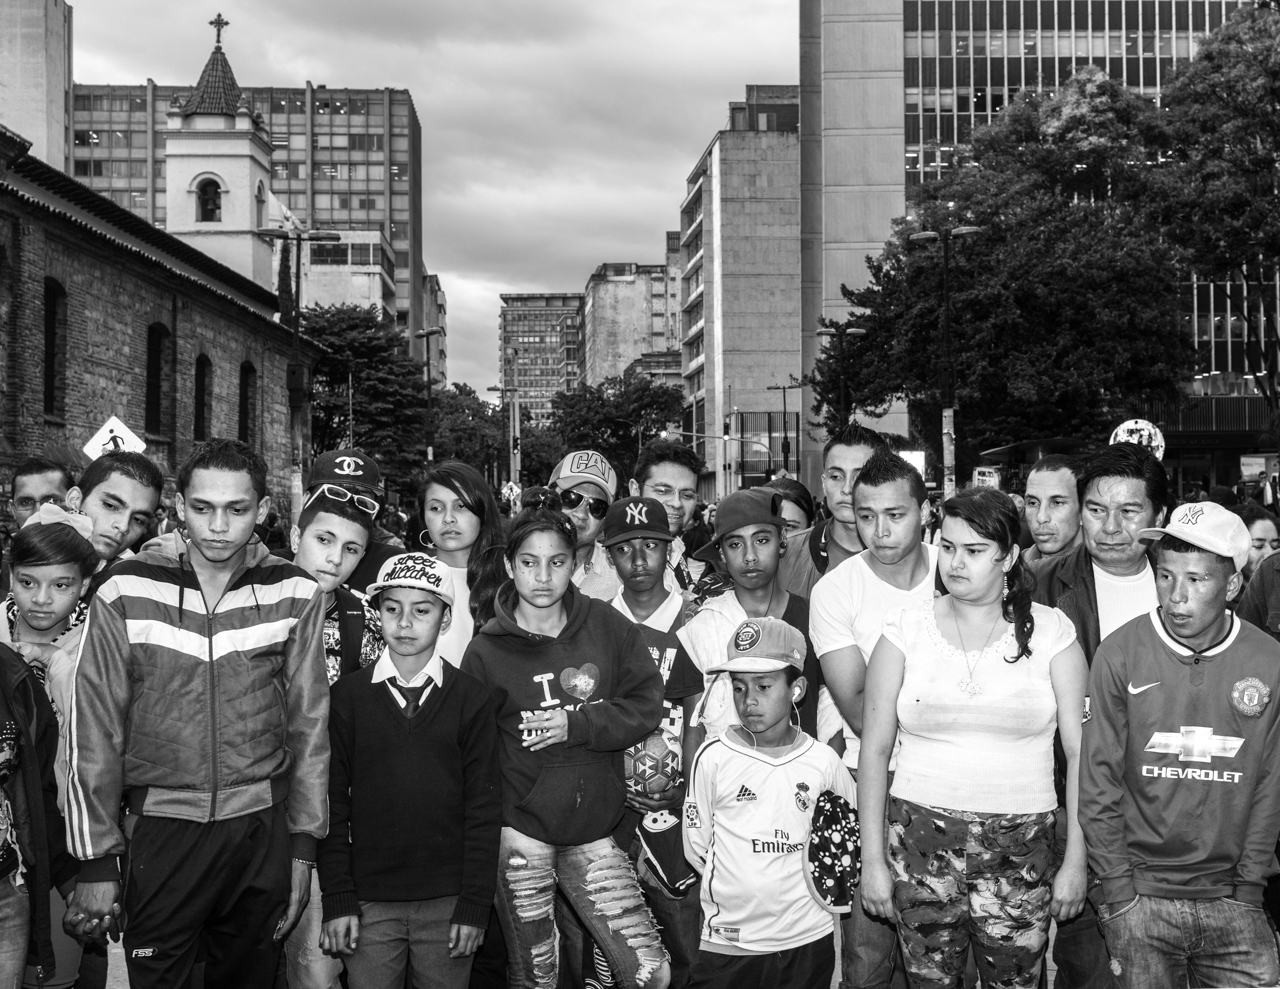 A group watches and listens to a street performer. Such performers are common along the Avenue. May 26, 2015. (Juan Cristóbal Cobo)